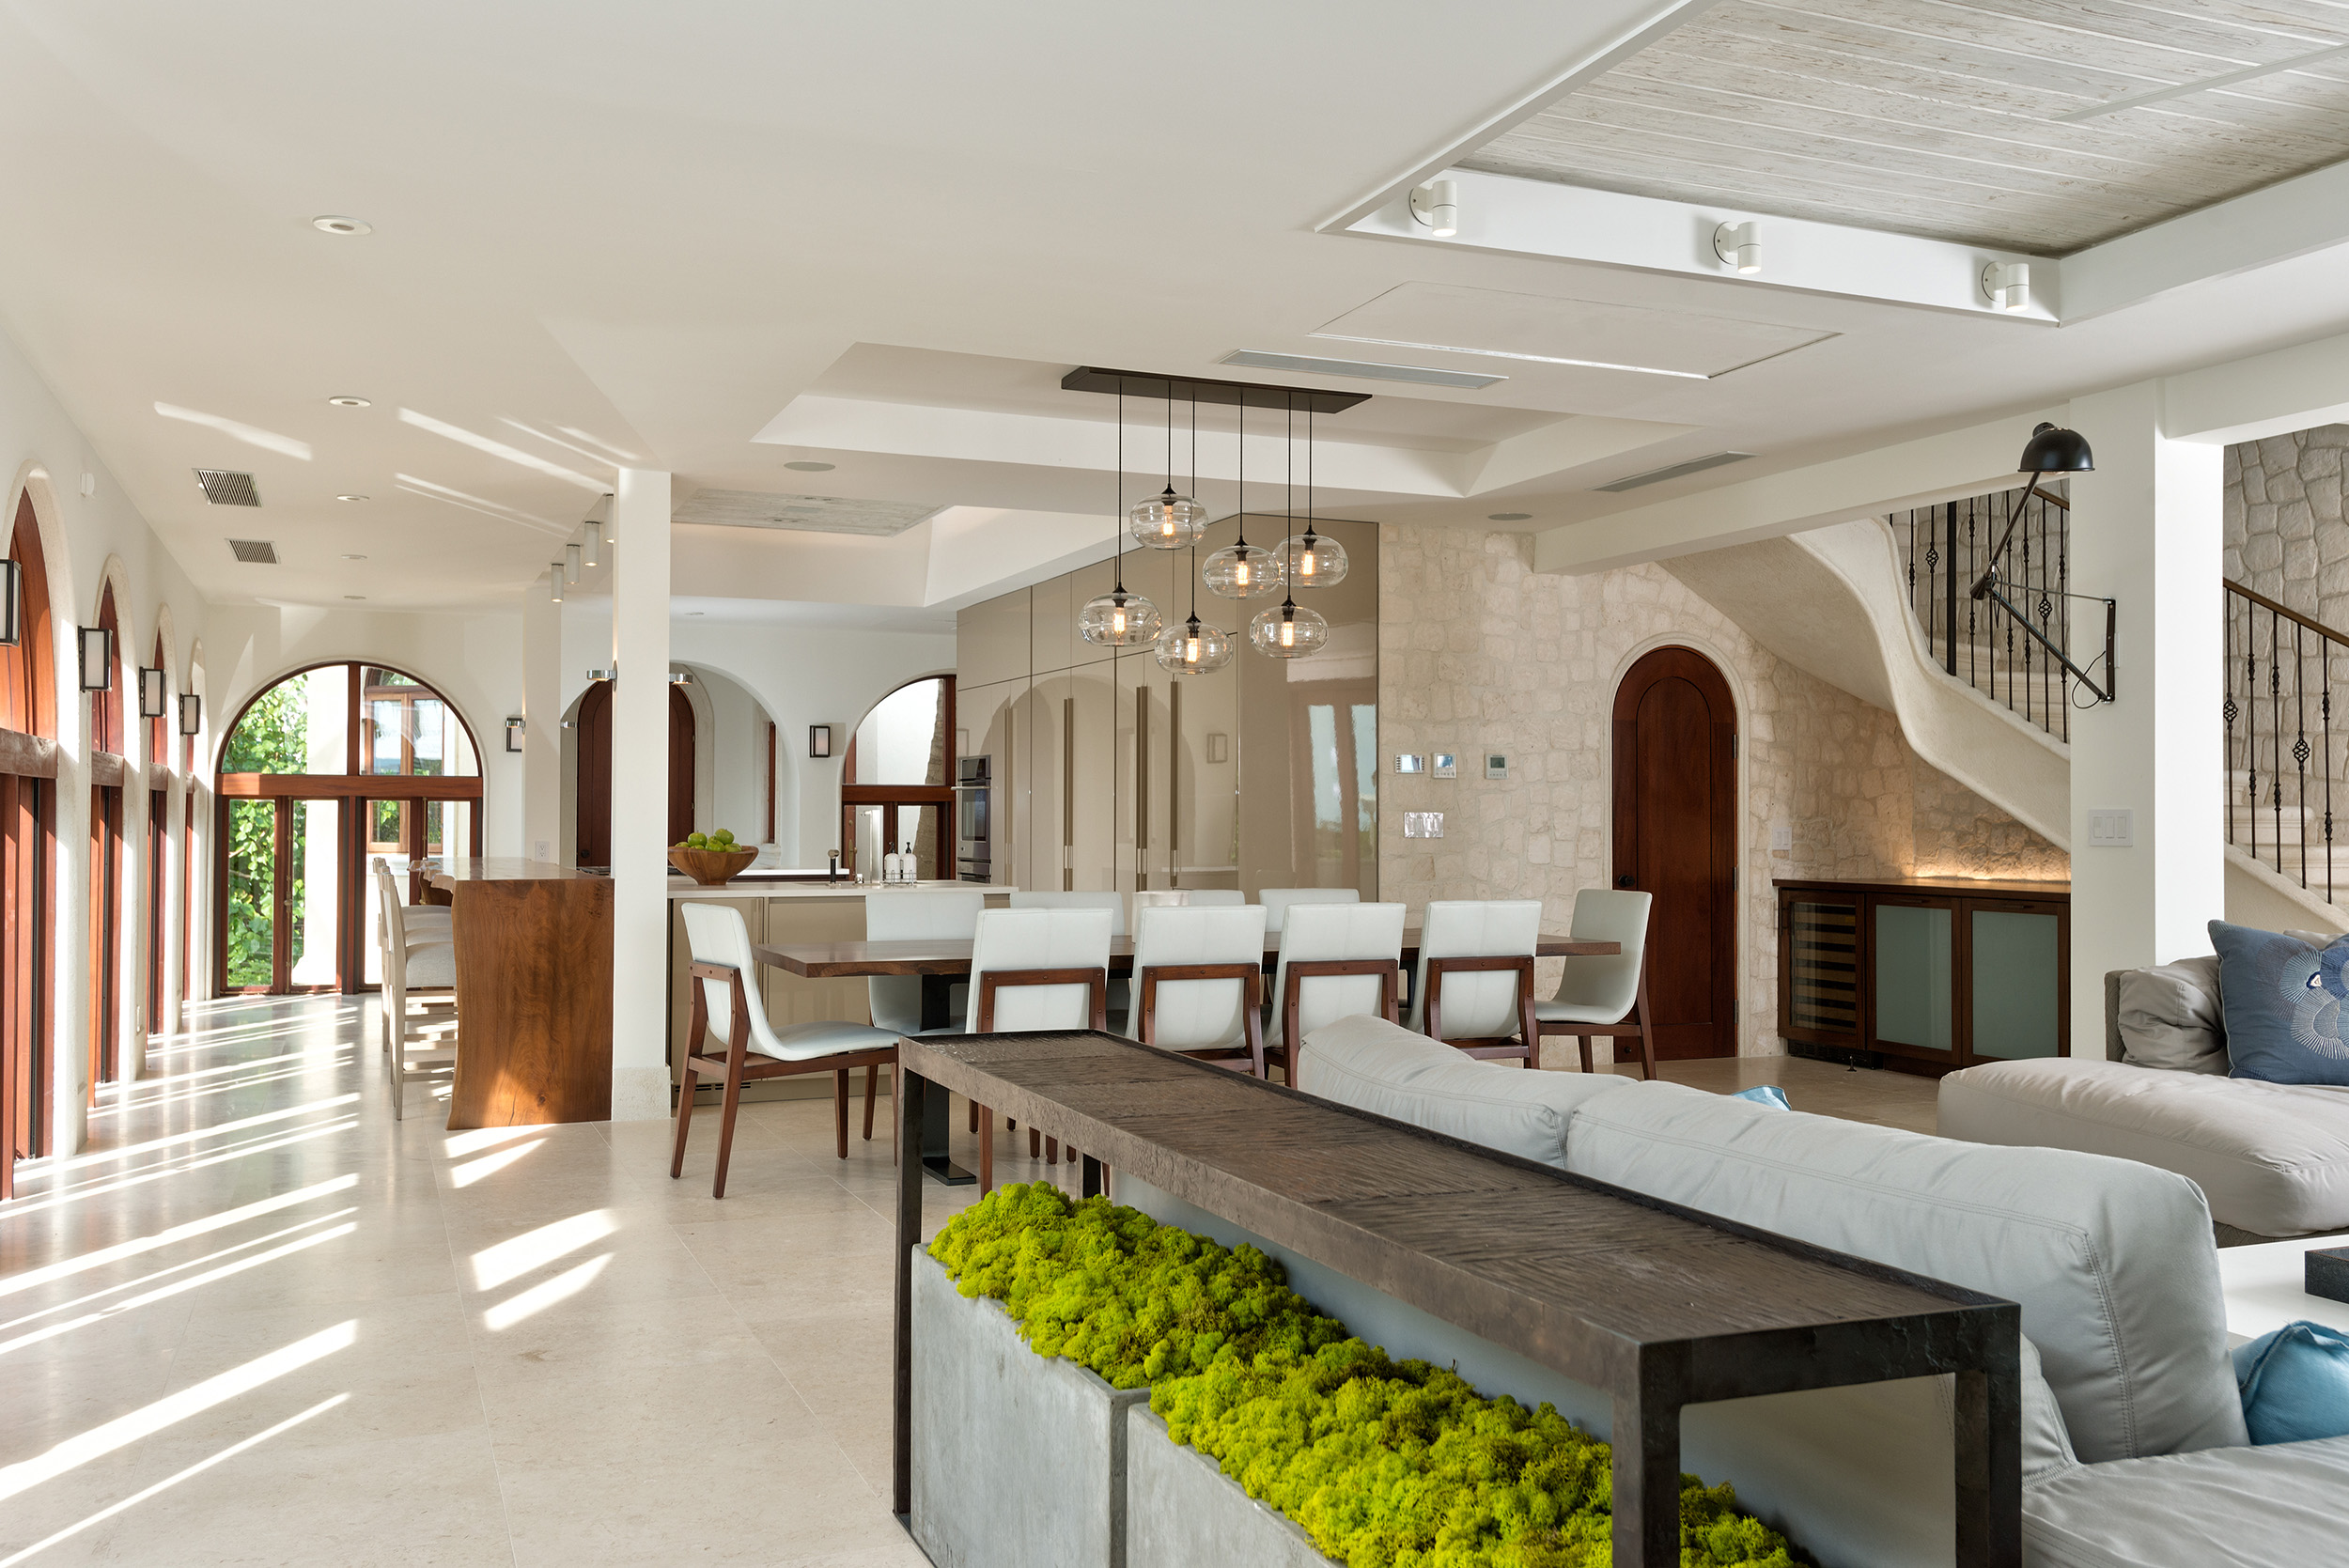 La Dolce Vita - view of the open plan living, dining and kitchen area